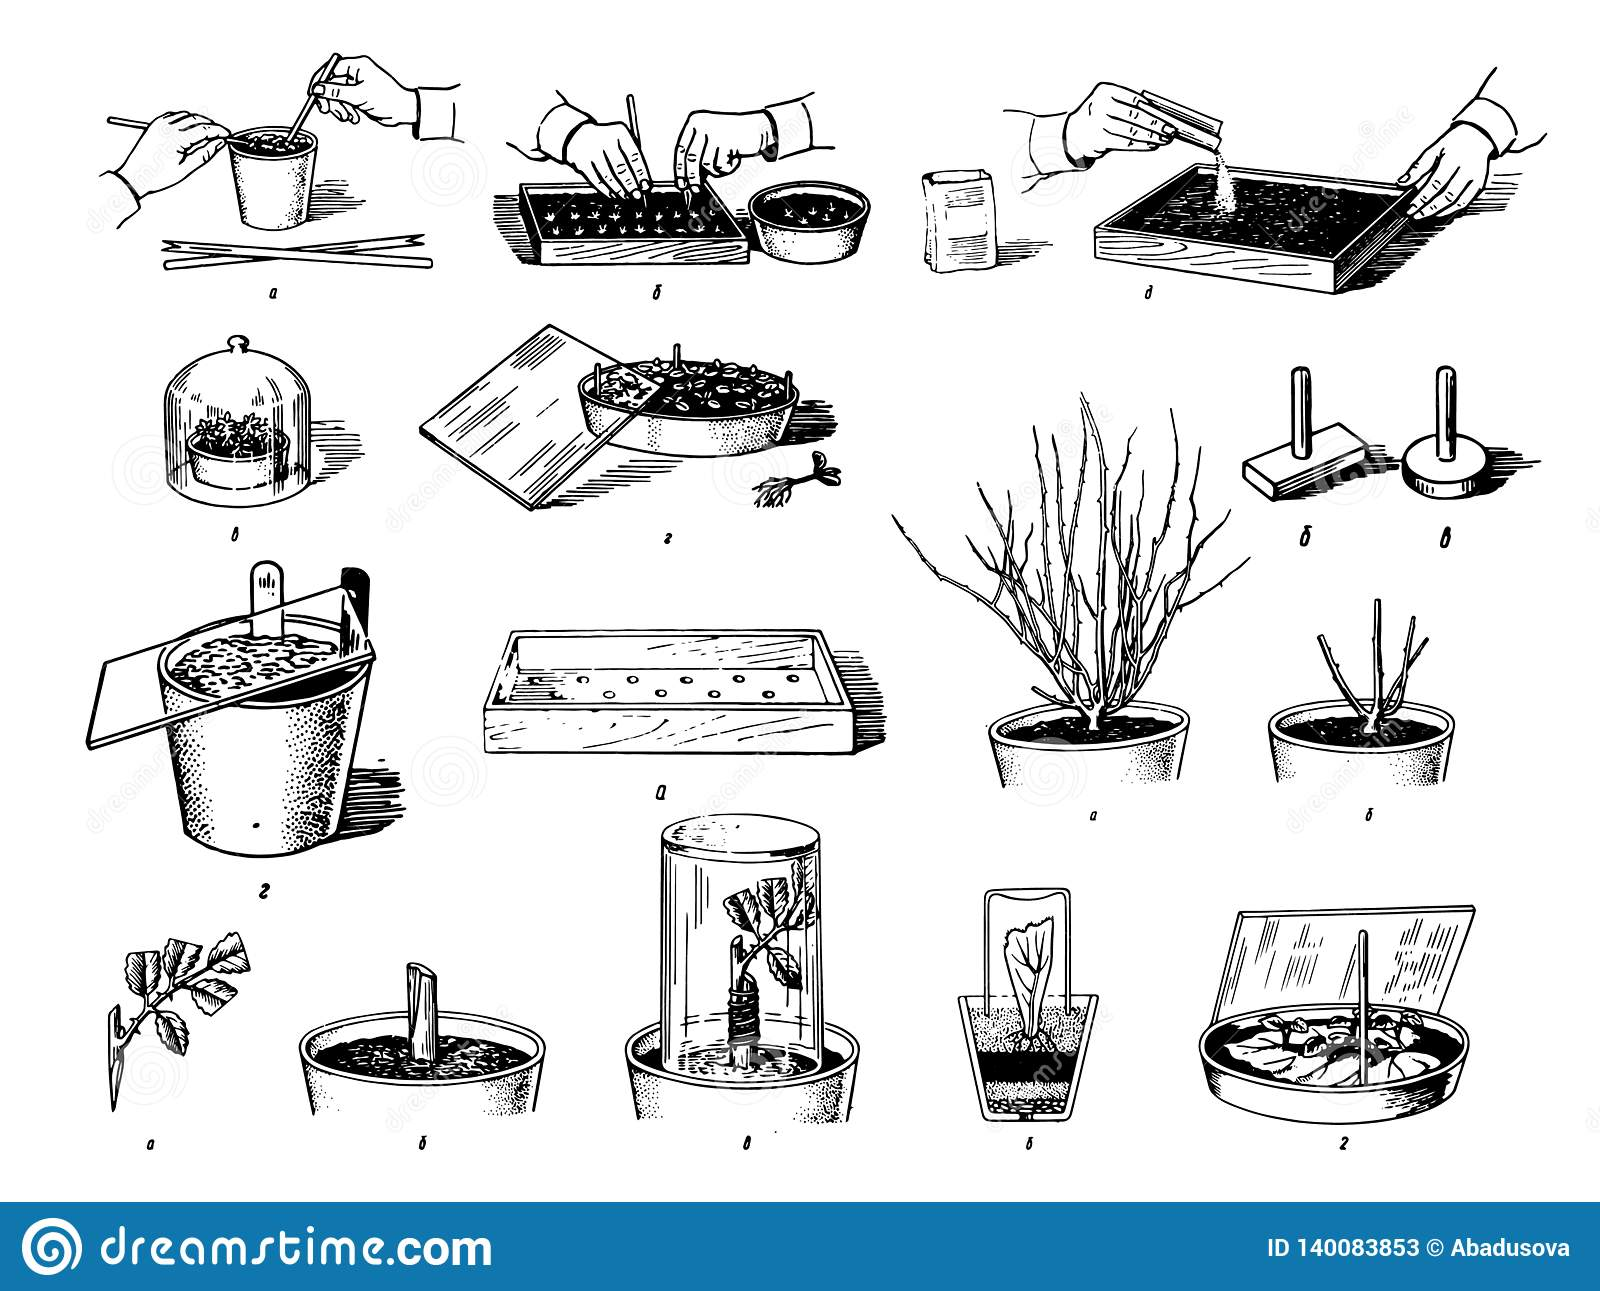 Vector Hand drawn sketch of plants care process illustration on white background